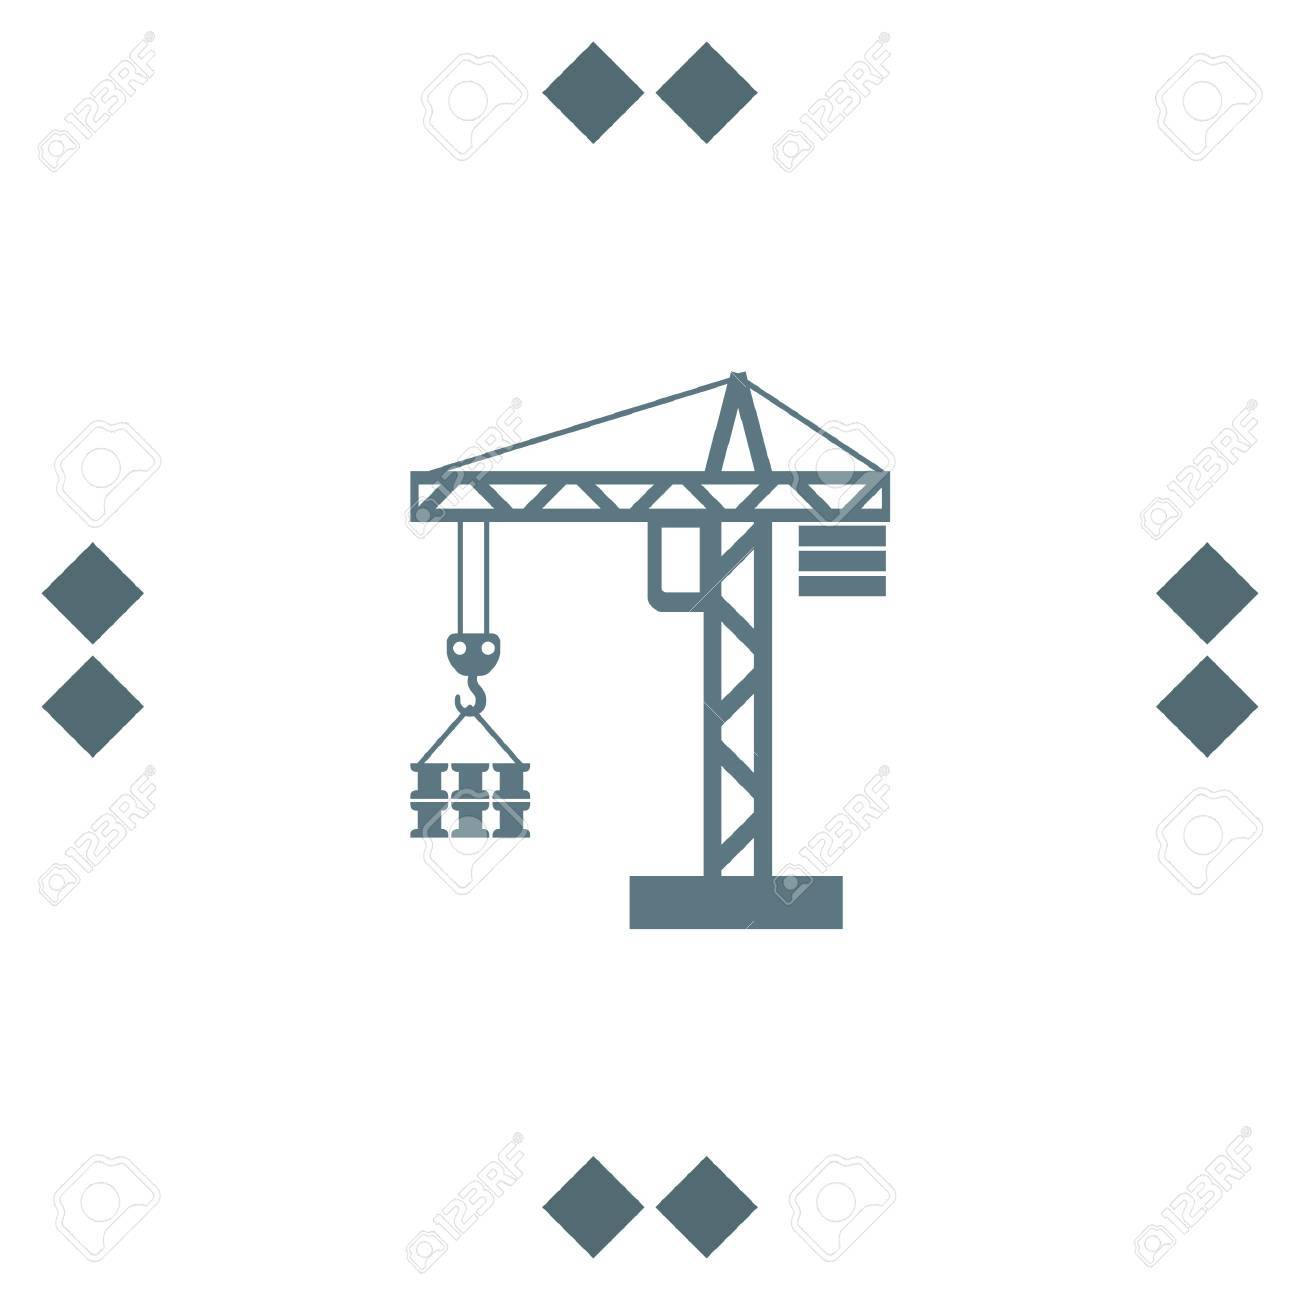 Under Construction Clip Art High-Res Vector Graphic - Getty Images